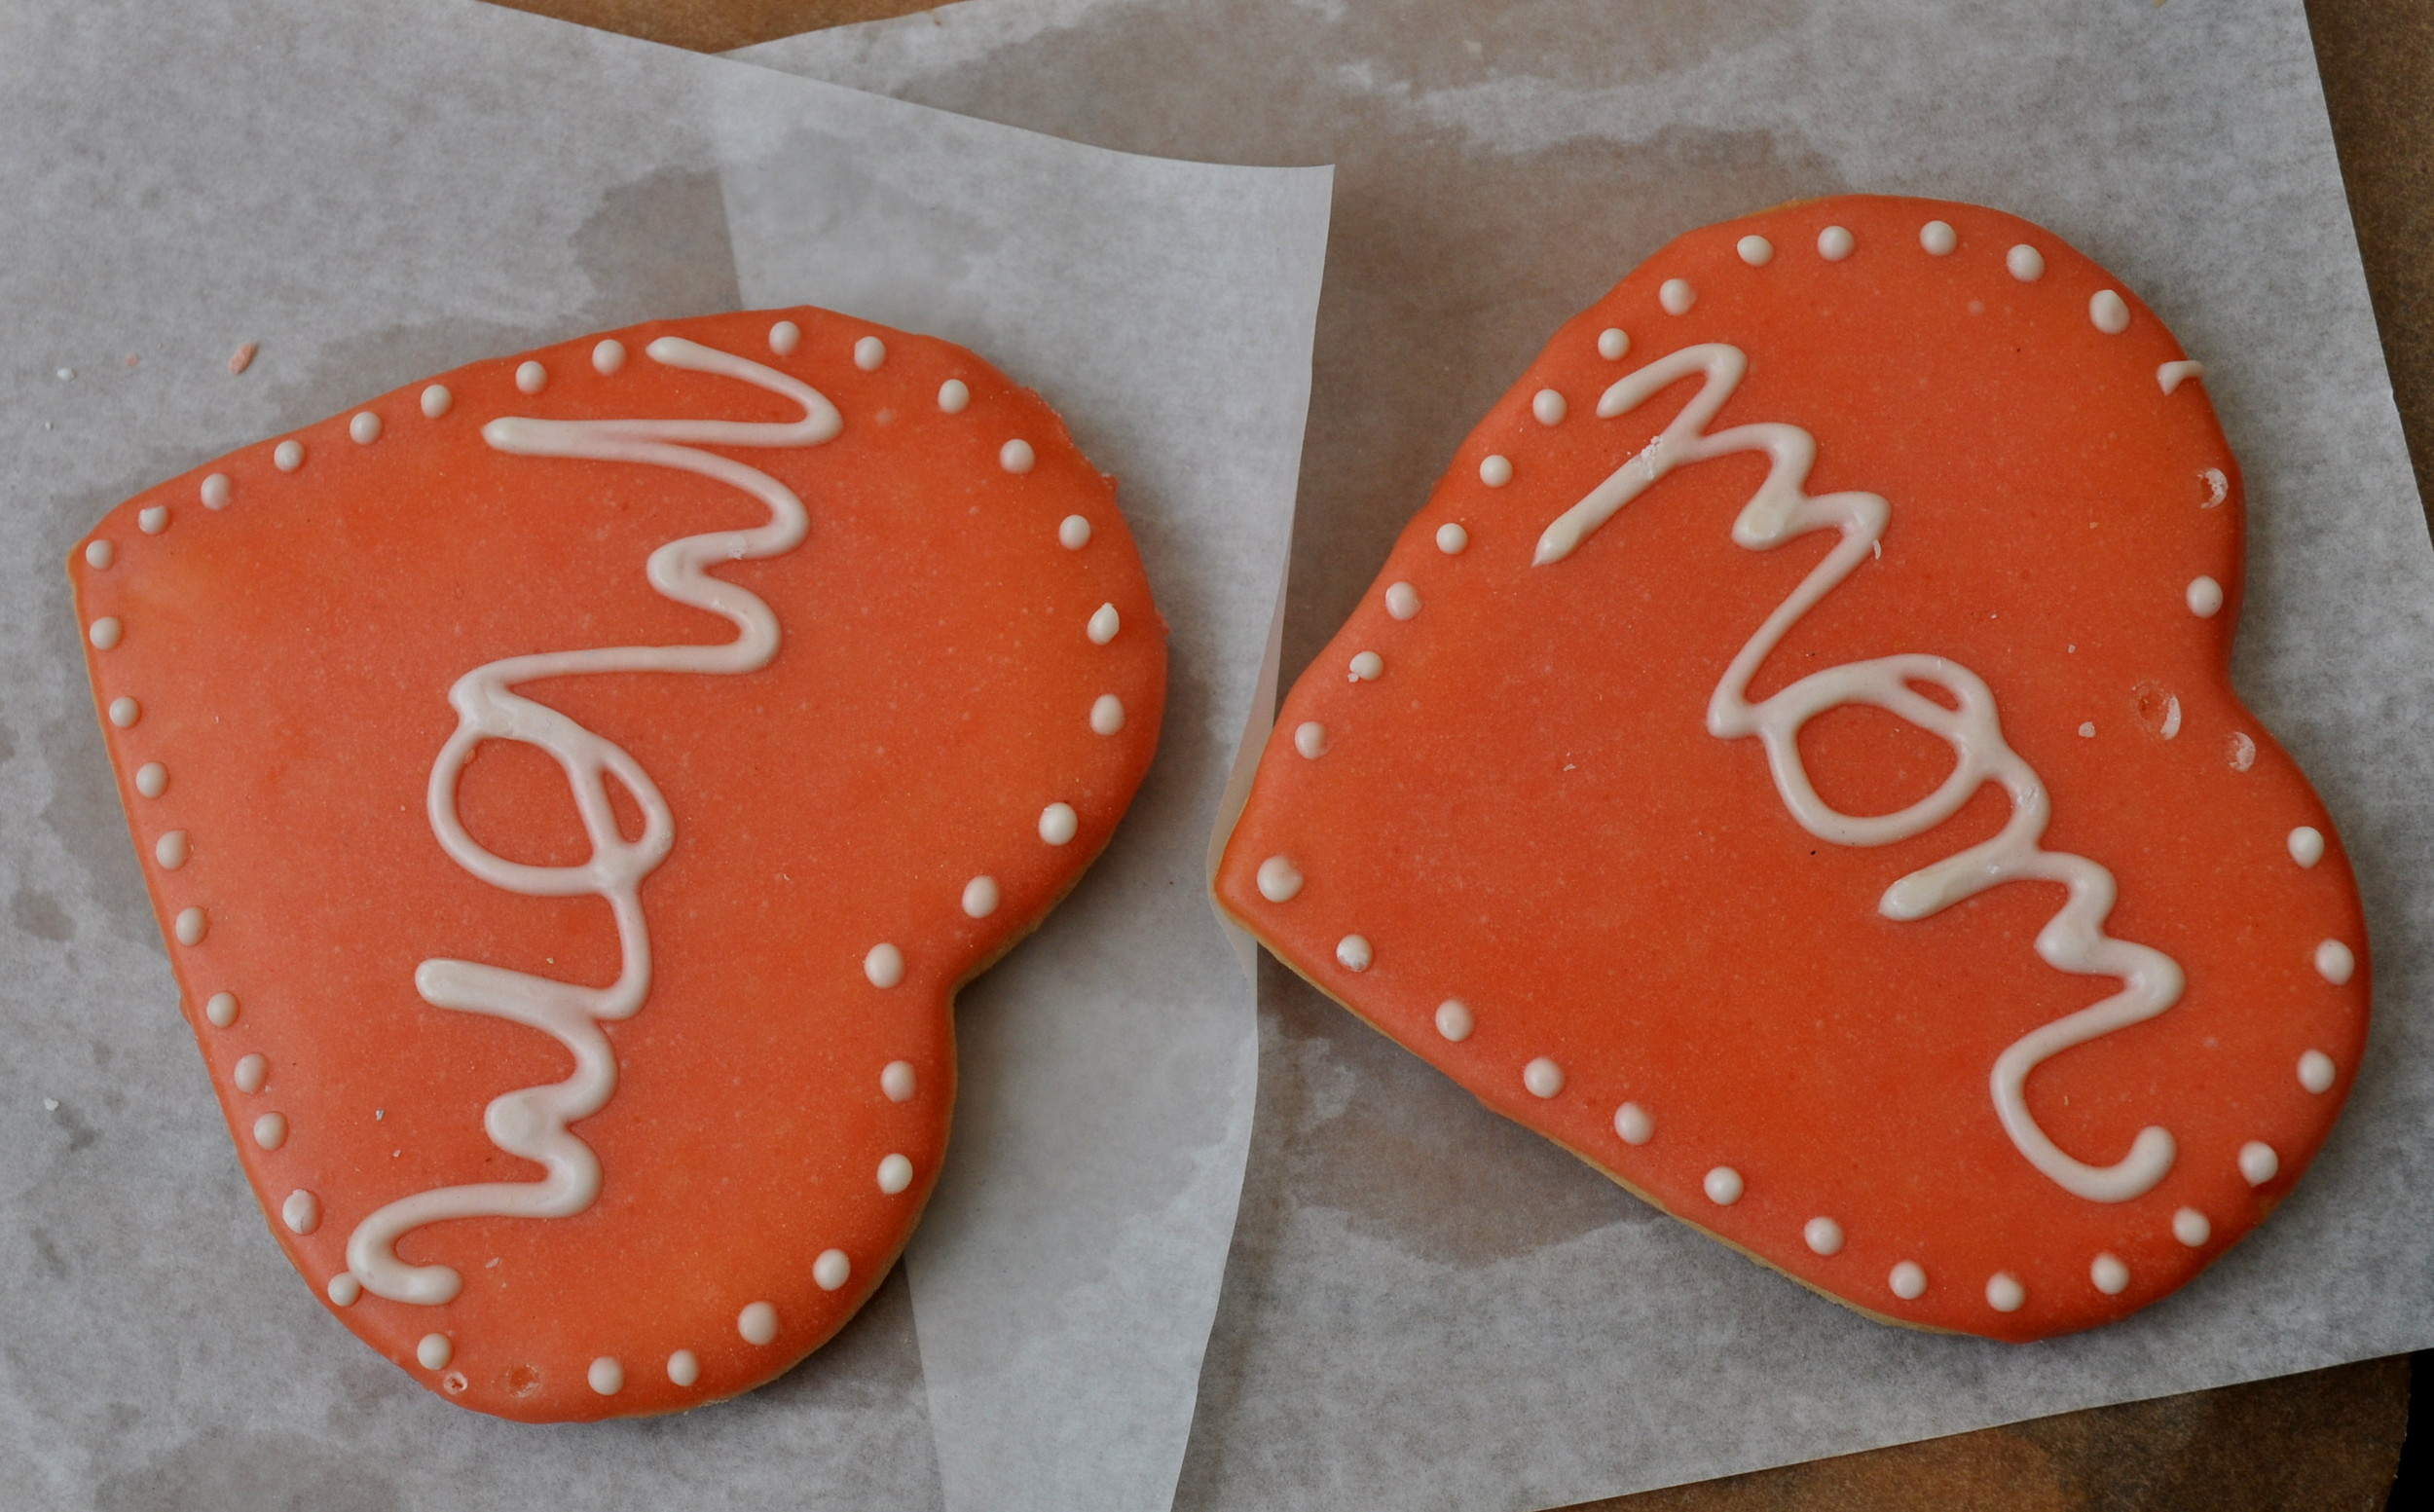 Mothers Day Cookies from Grateful Bread Bakery. Photo copyright 2013 by Zachary D. Lyons.